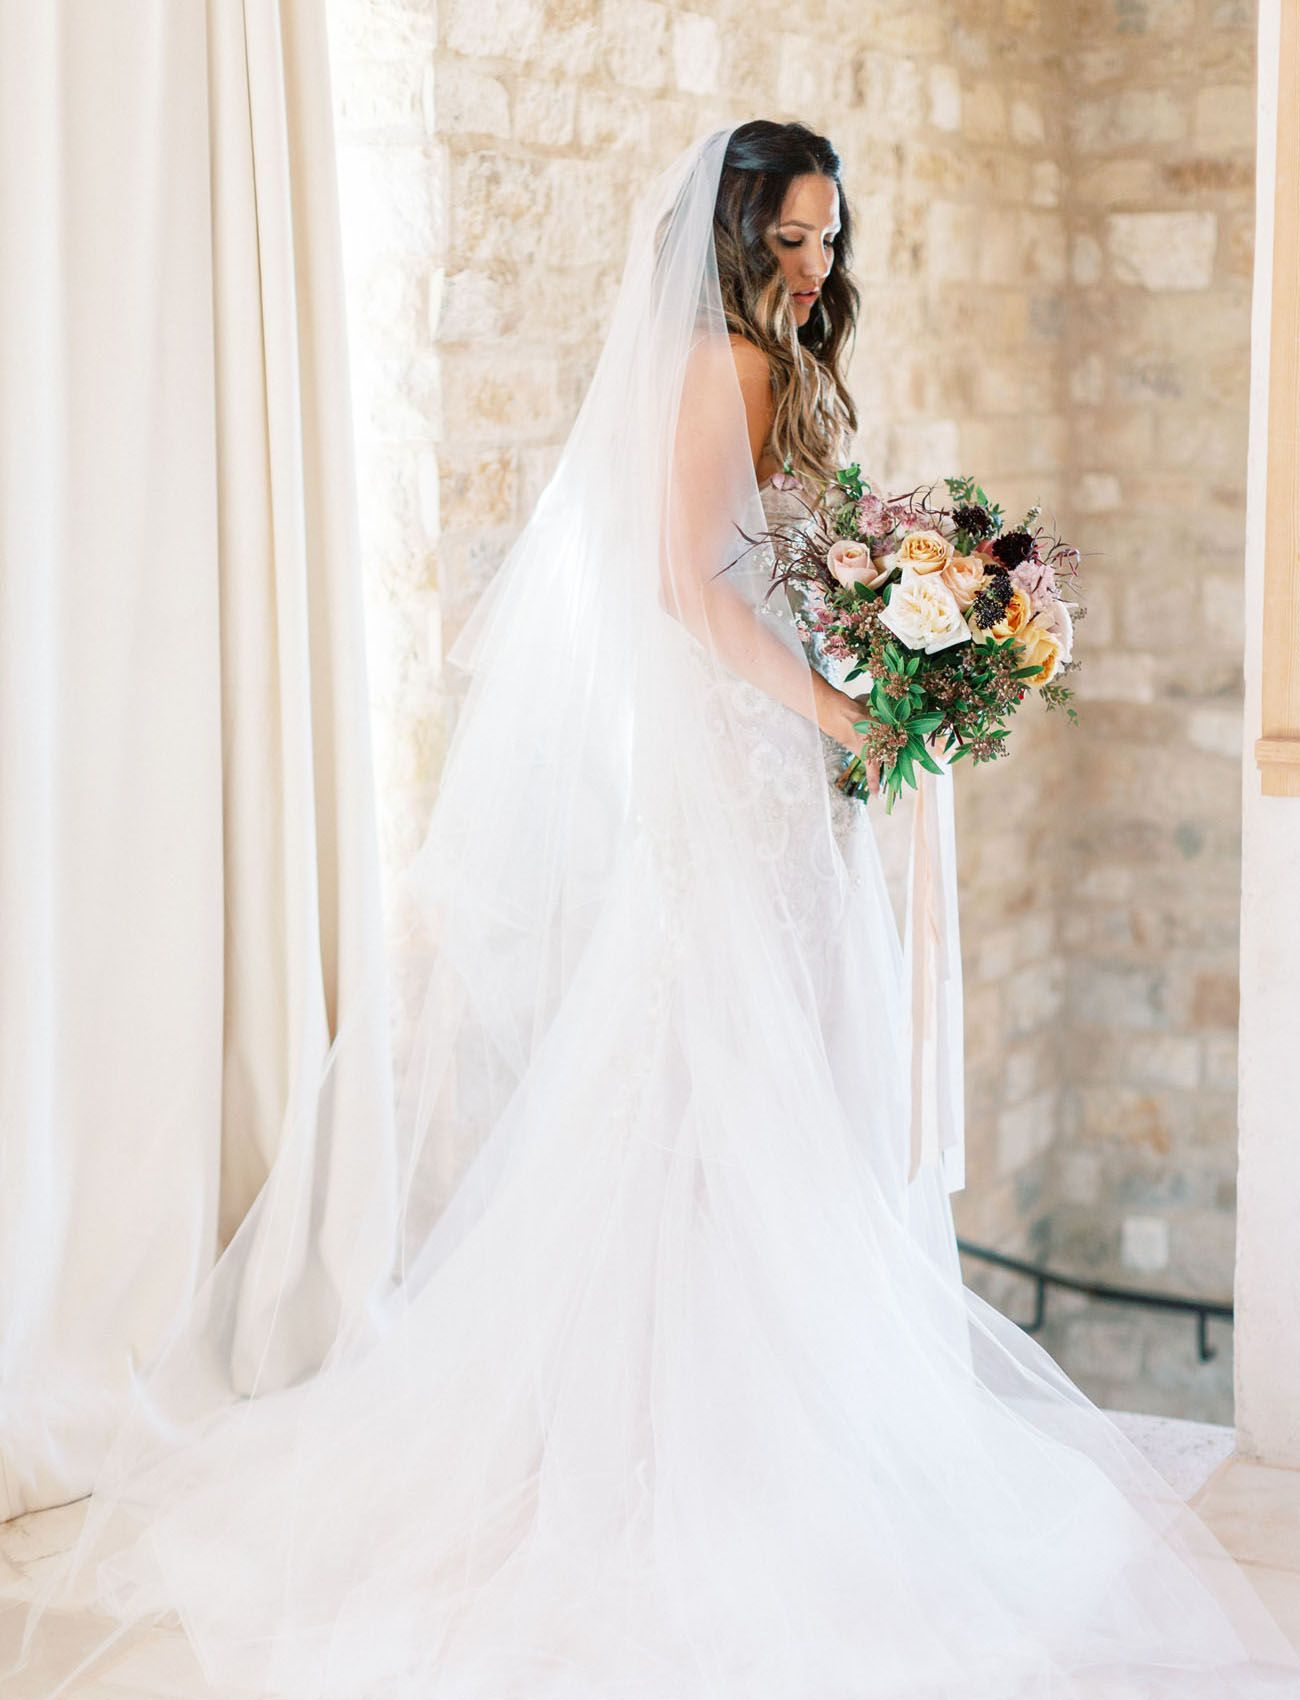 Bring On The Burgundy This Modern Wedding At Sunstone Villa Is A